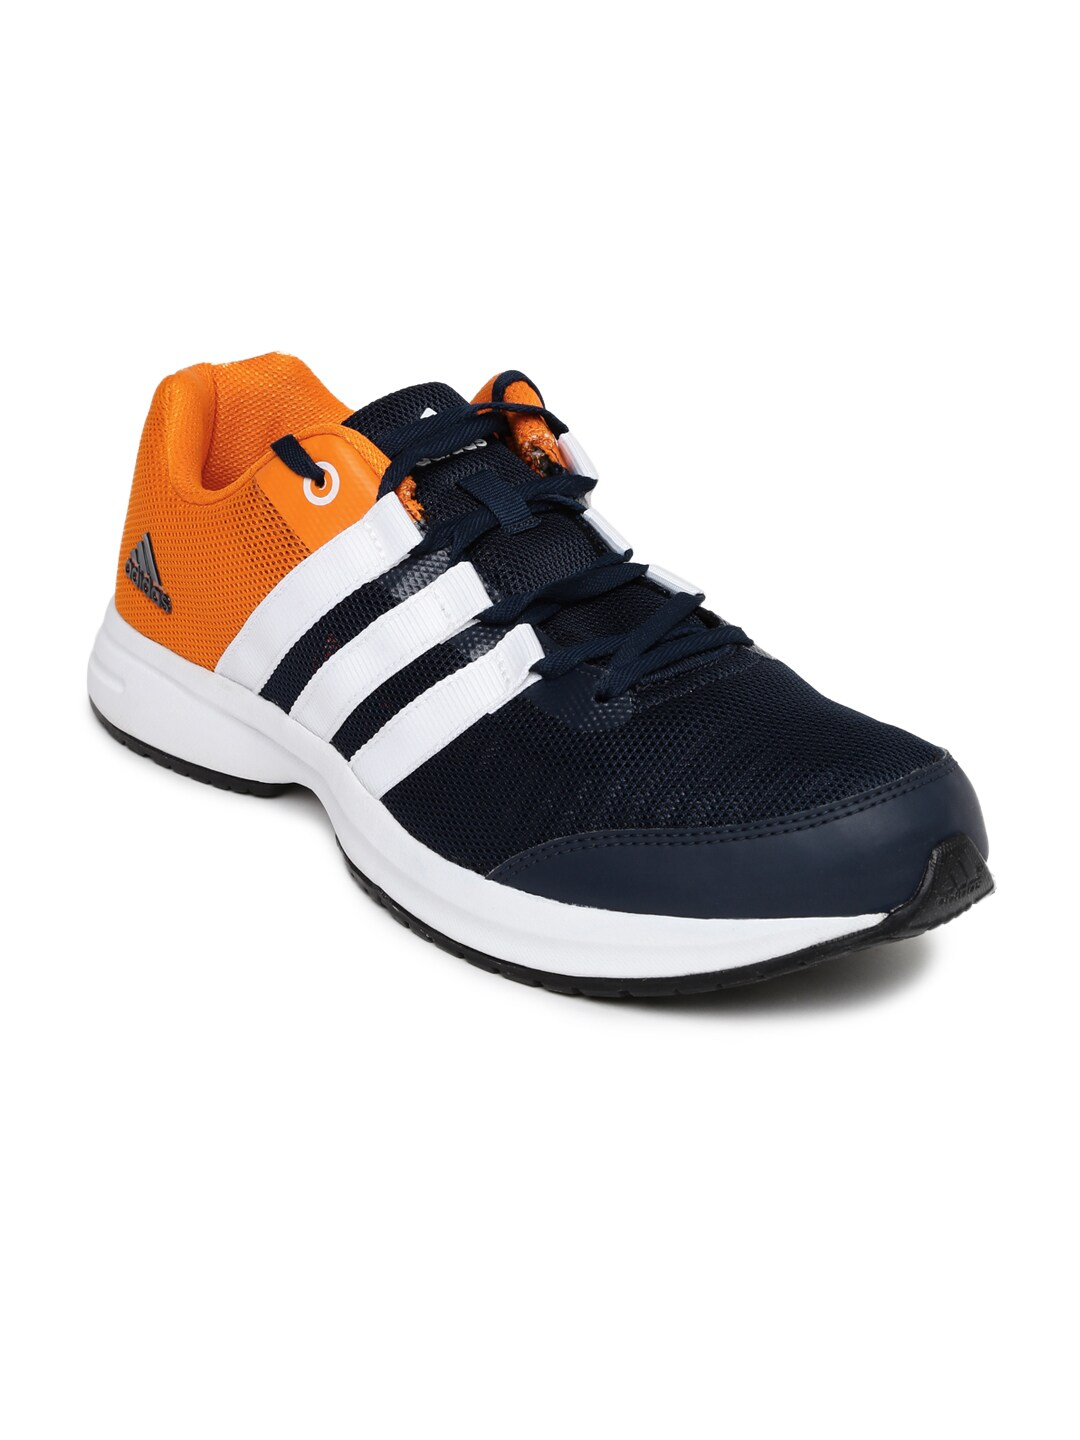 los angeles b1652 d2850 Adidas ba2816 Men Navy And Orange Colourblocked Ezar 3 0 Running Shoes-  Price in India